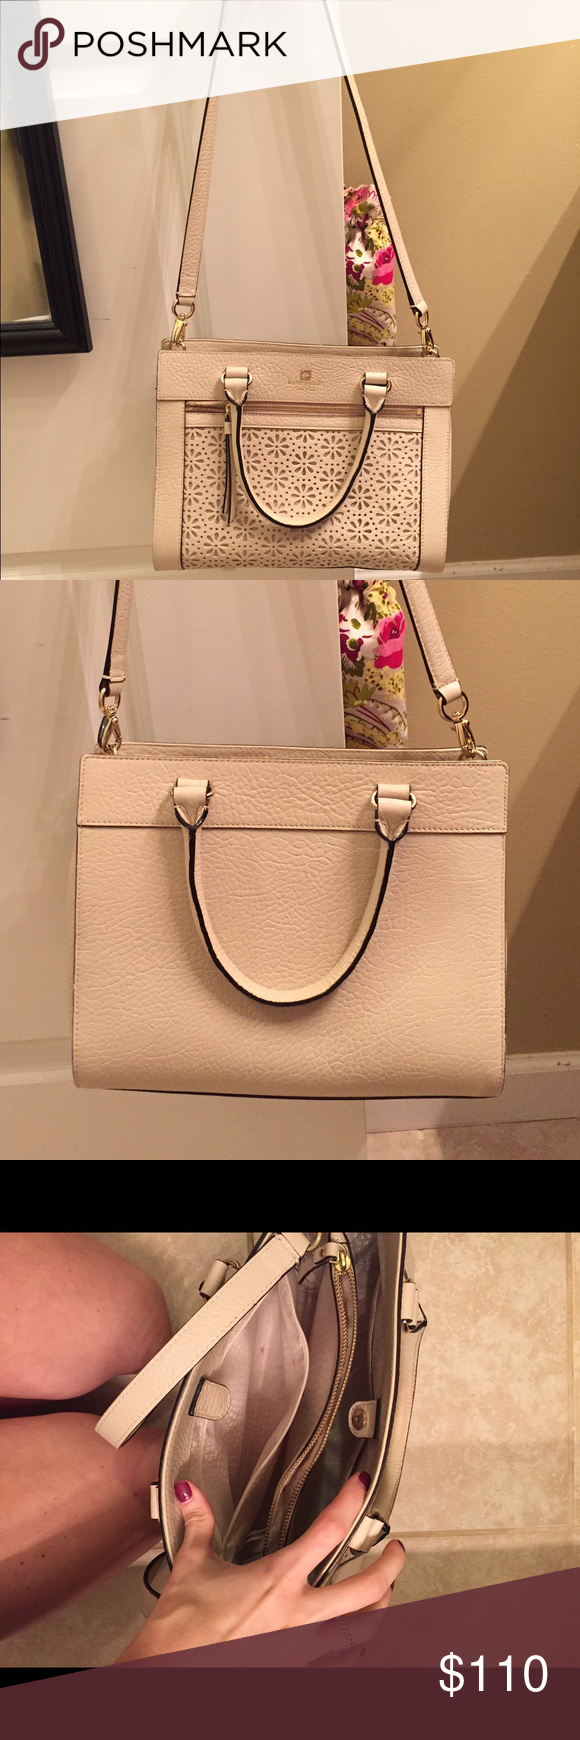 Kate Spade tote Great condition. Only carried a few times! Just doing a clean out of my closet! Bags Totes